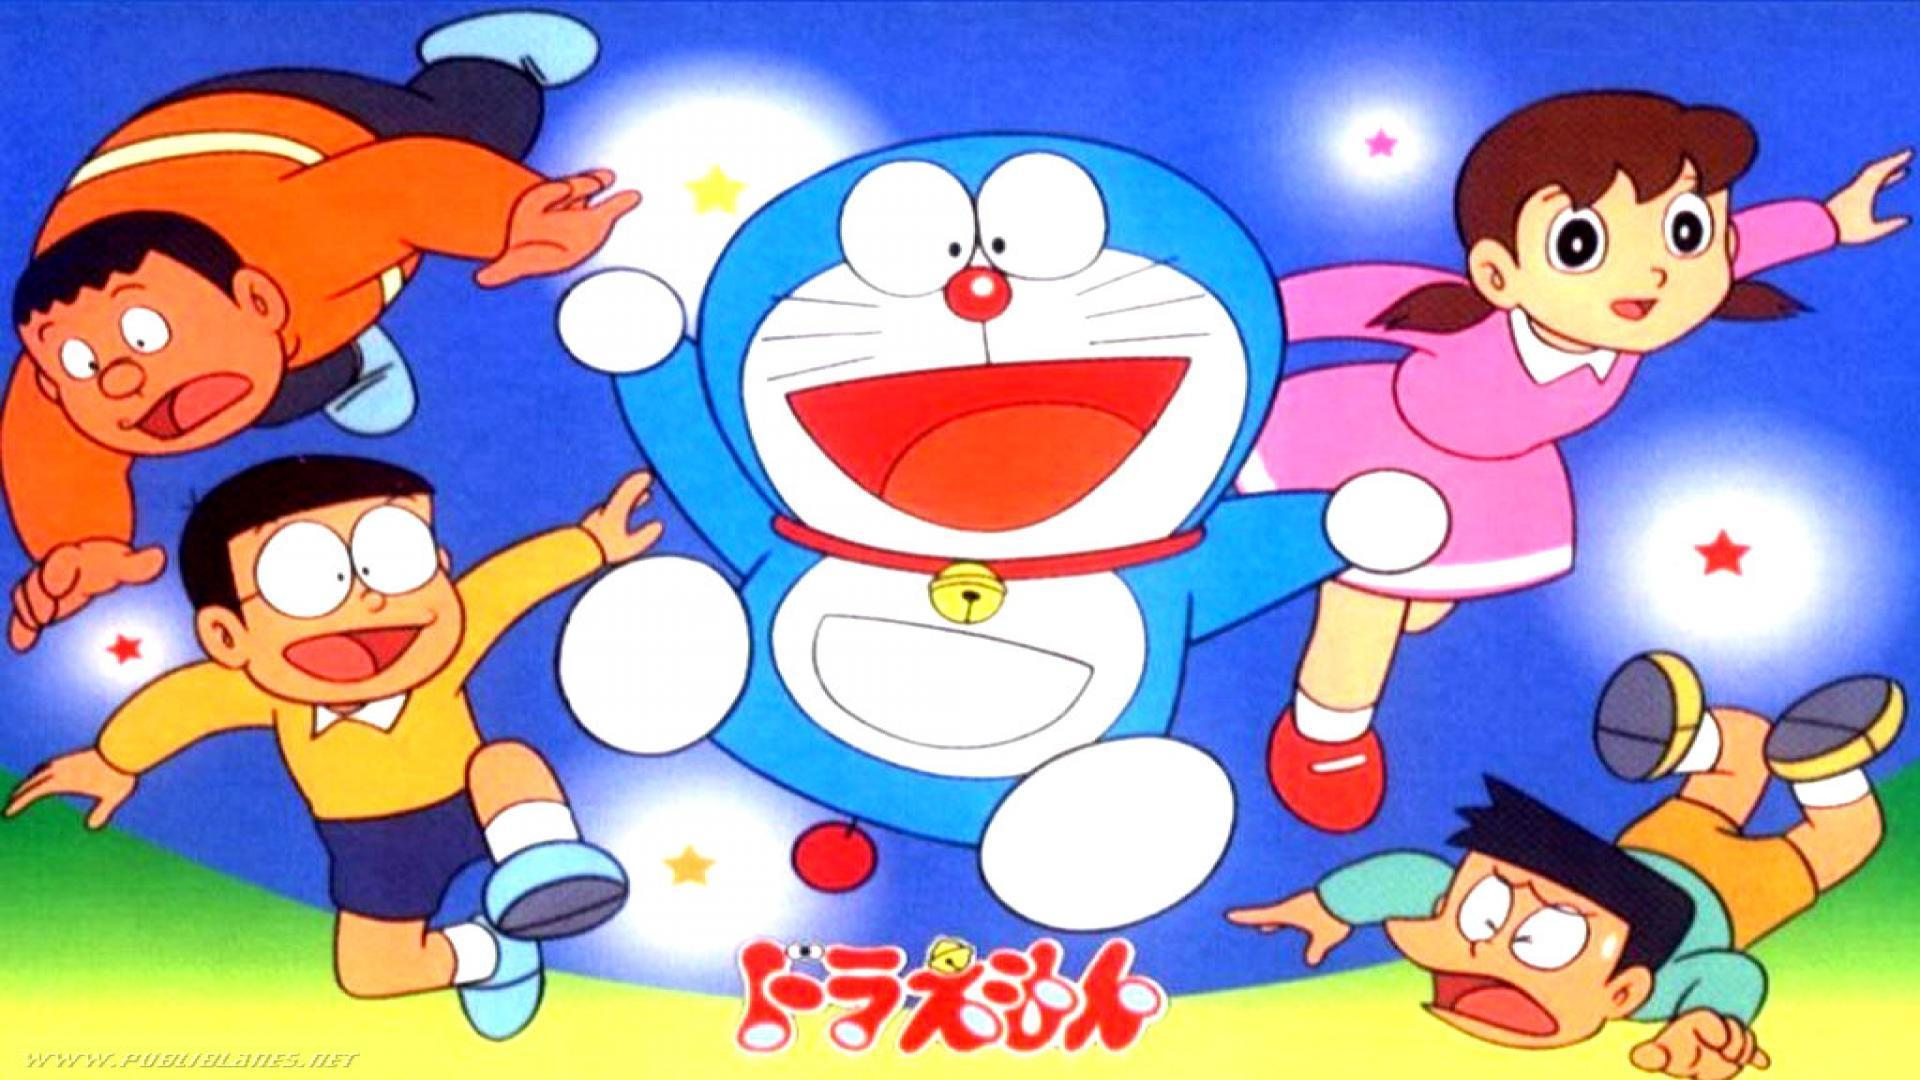 Images For > Doraemon Images Hd